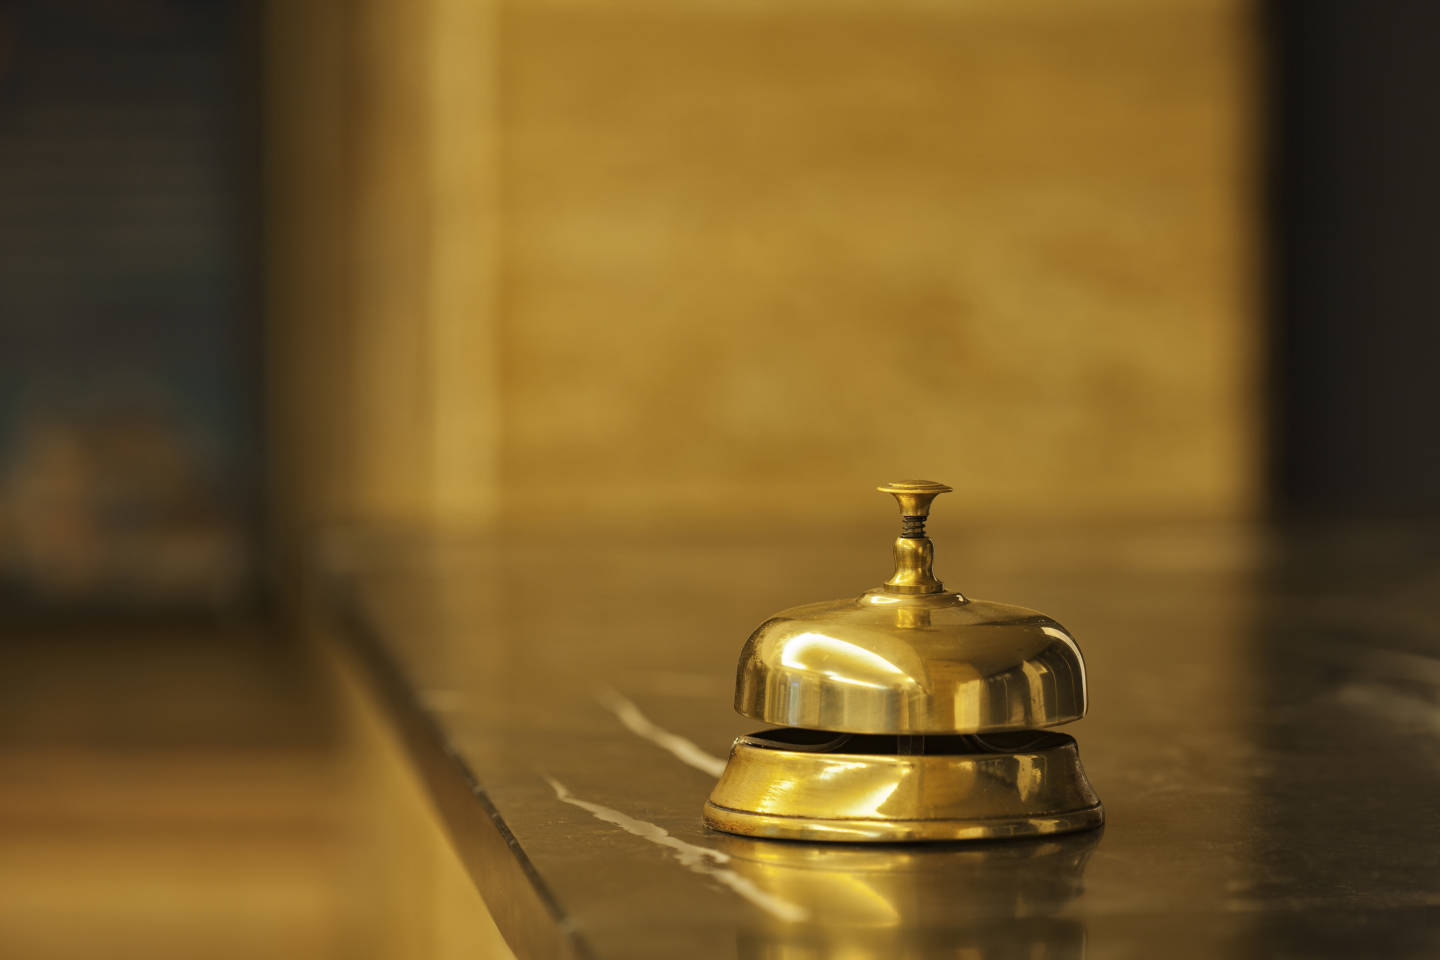 gold bell in hotel lobby